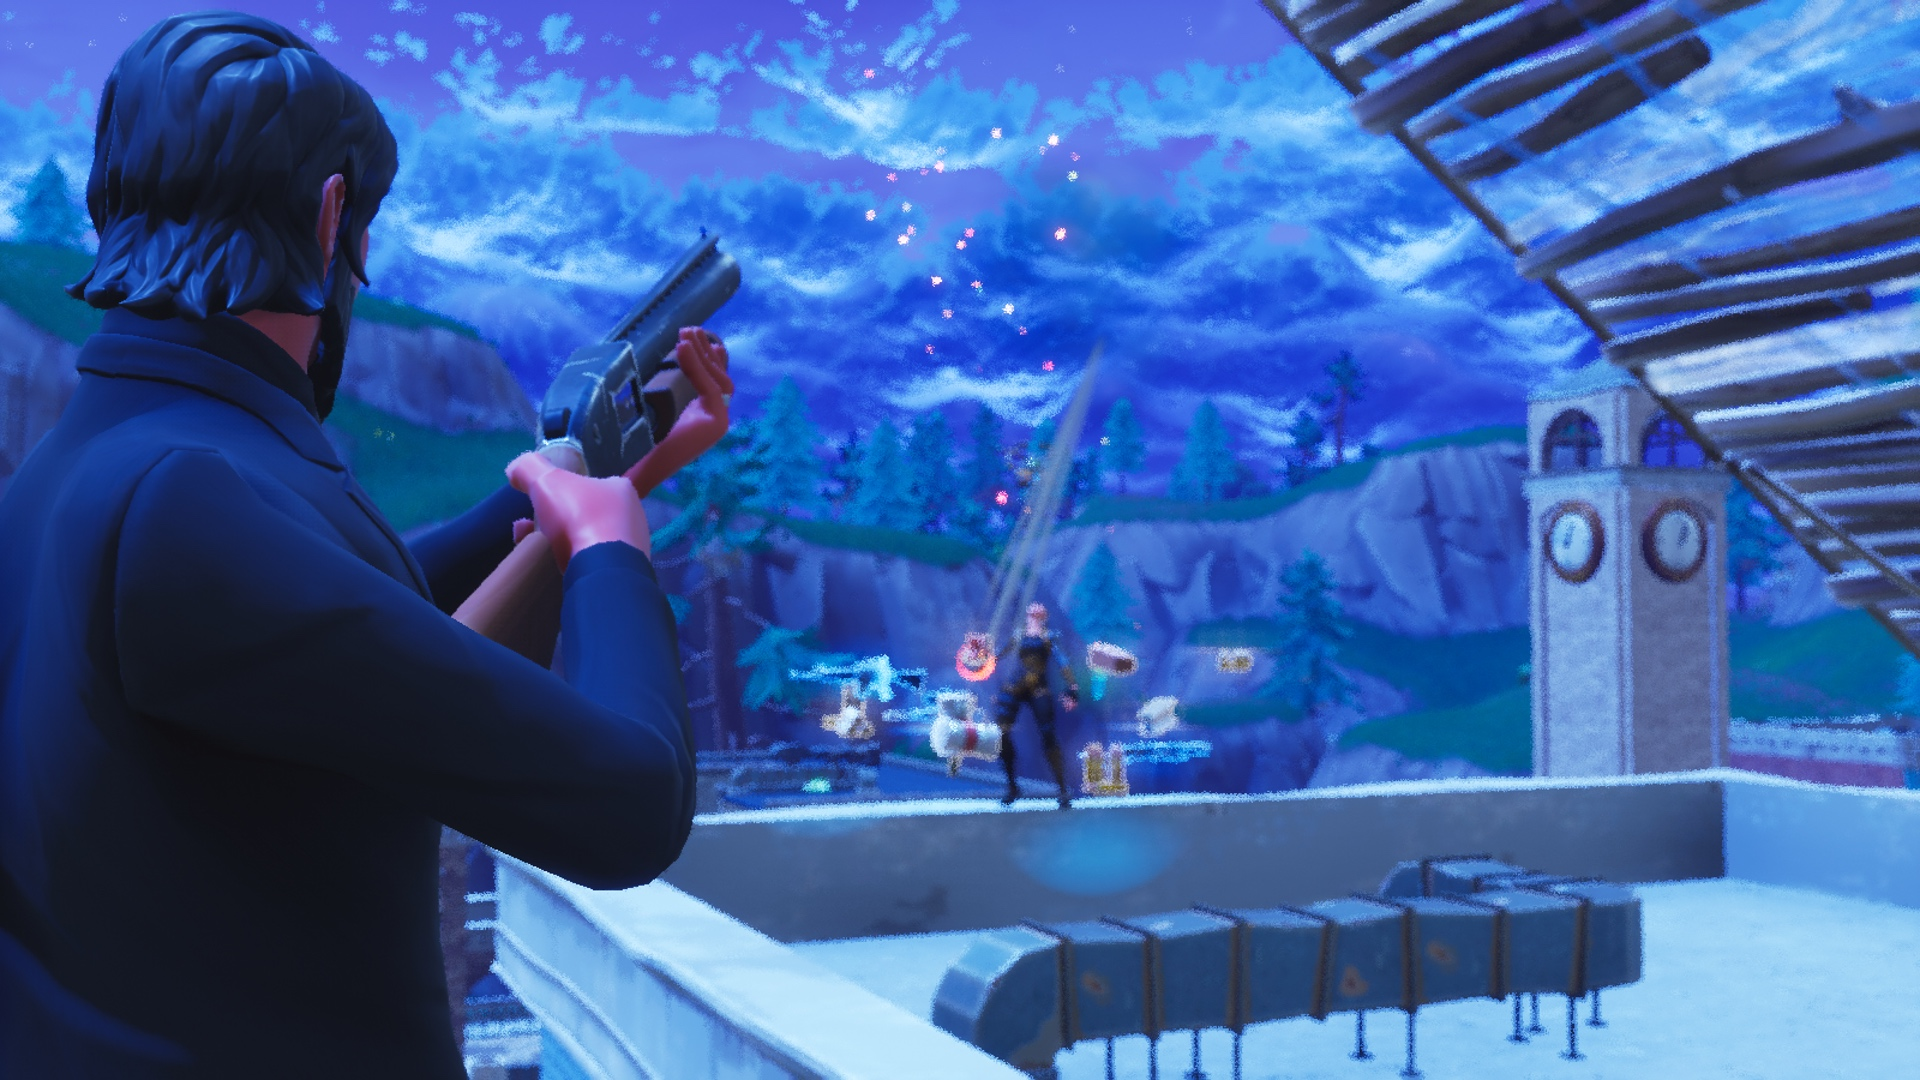 Epic acknowledges that shields and shotguns are necessary for Fortnite